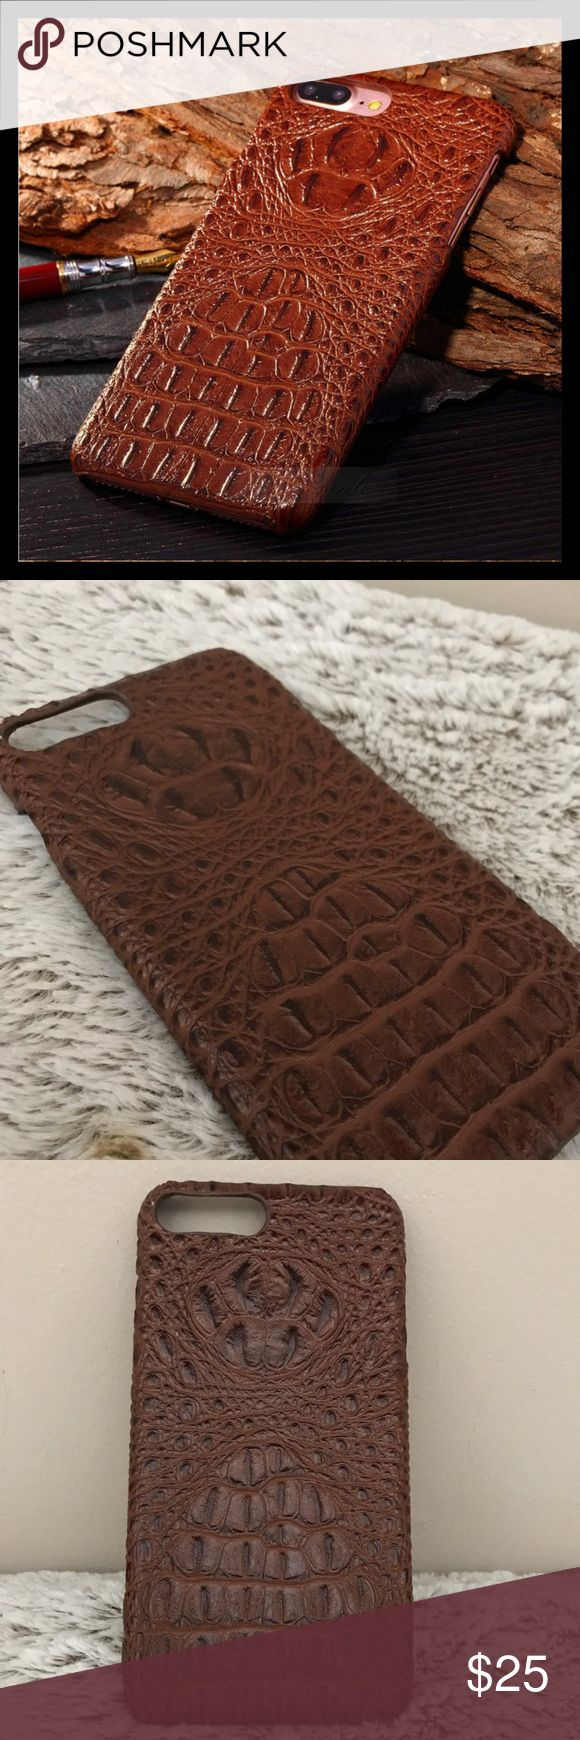 Crocodile Pattern Genuine Leather IPhone 7 Plus Cs Compatible with:iPhone 6 6S /6 Plus 6S Plus  /7 Plus Material: leather The extreme smooth of feeling will make you can't put it down Popular simple, form-fitting design Allow full access to controls and ports Impact protection and scratch resistance Bumper protects around the edges of your phone, avoid laying or falling directly on its screen iphone Accessories Phone Cases